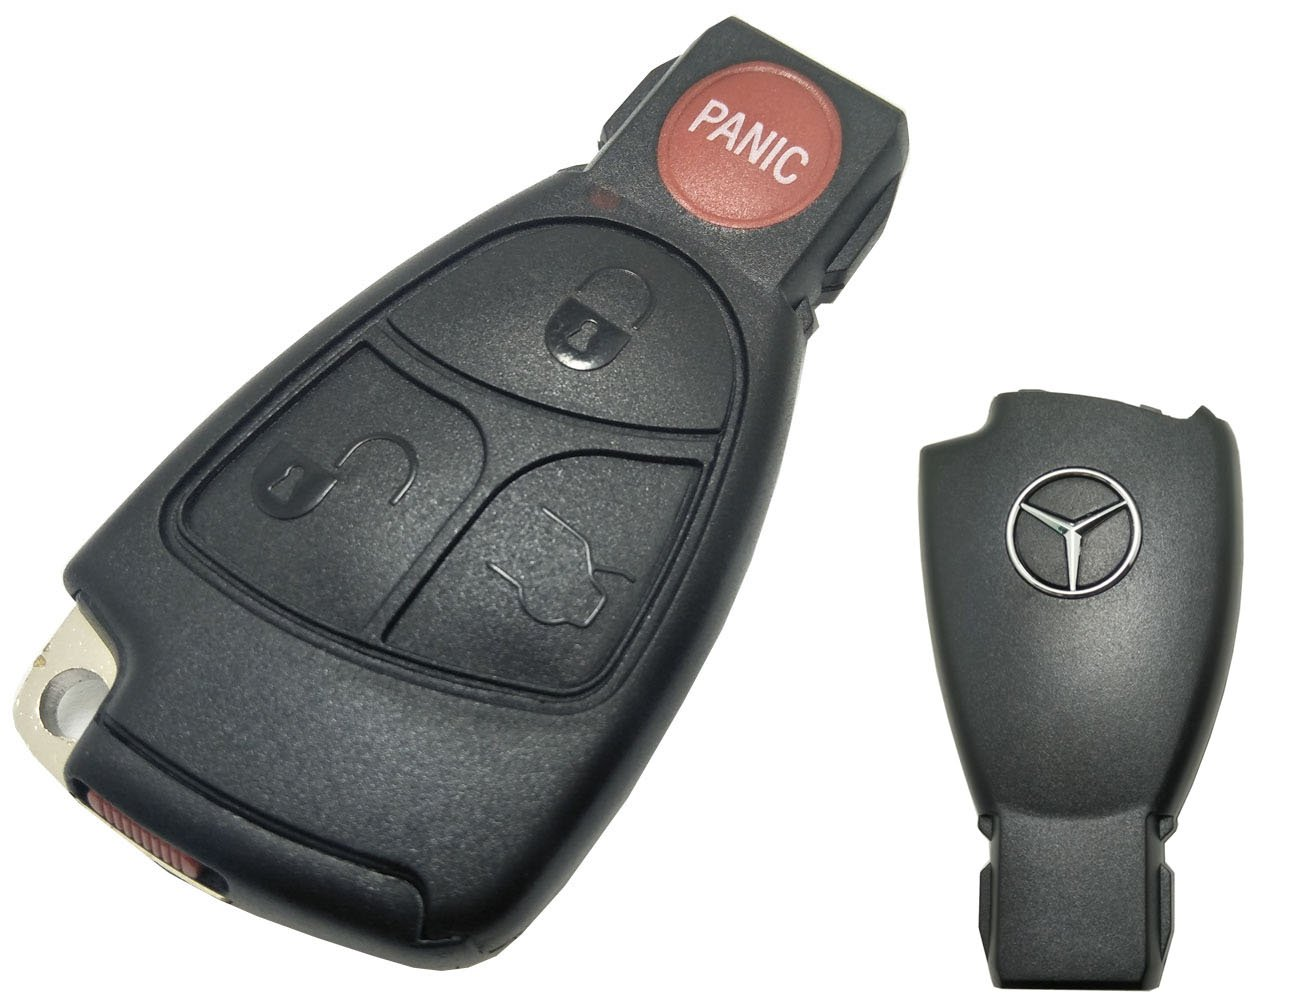 Replacement for Mercedes-Benz IYZ3312 Keyless Entry Remote Car Key Fob Control,FCCID:IYZ3312,by AUTOKEYMAX SINGLE